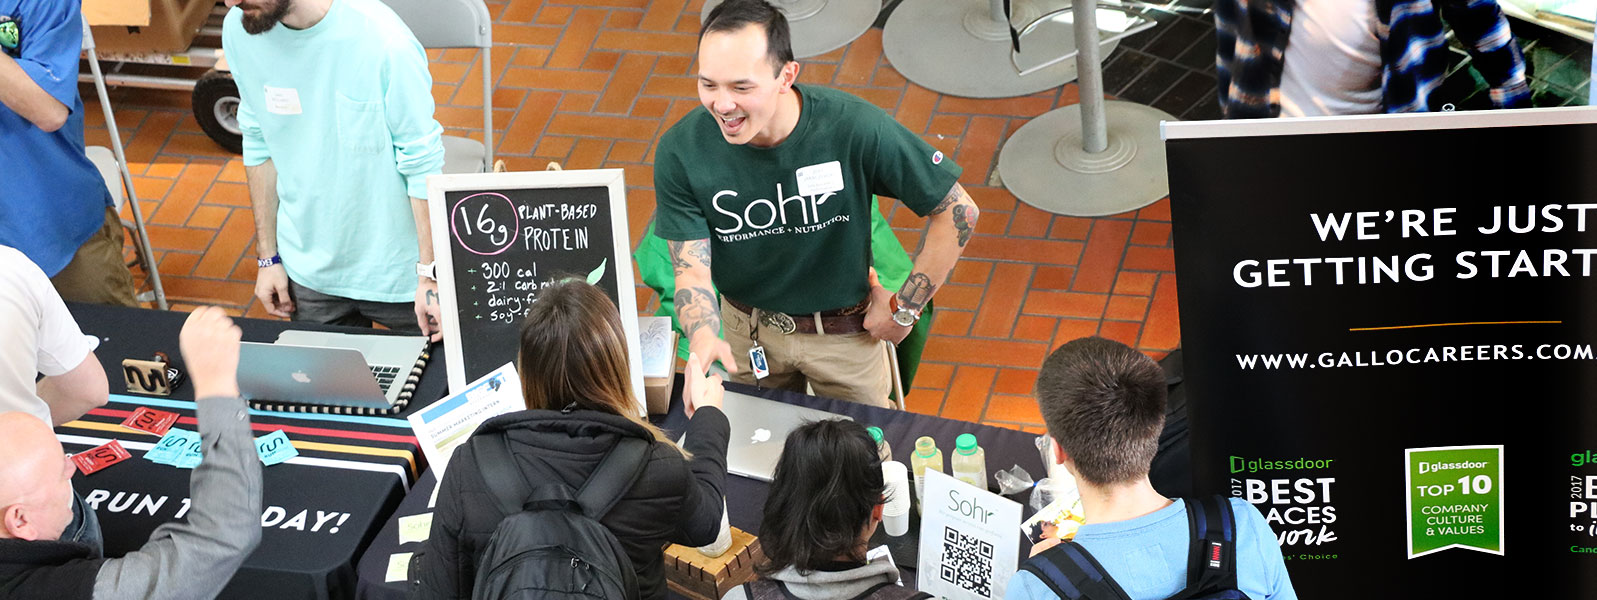 Alumni startup owner shakes hands with student